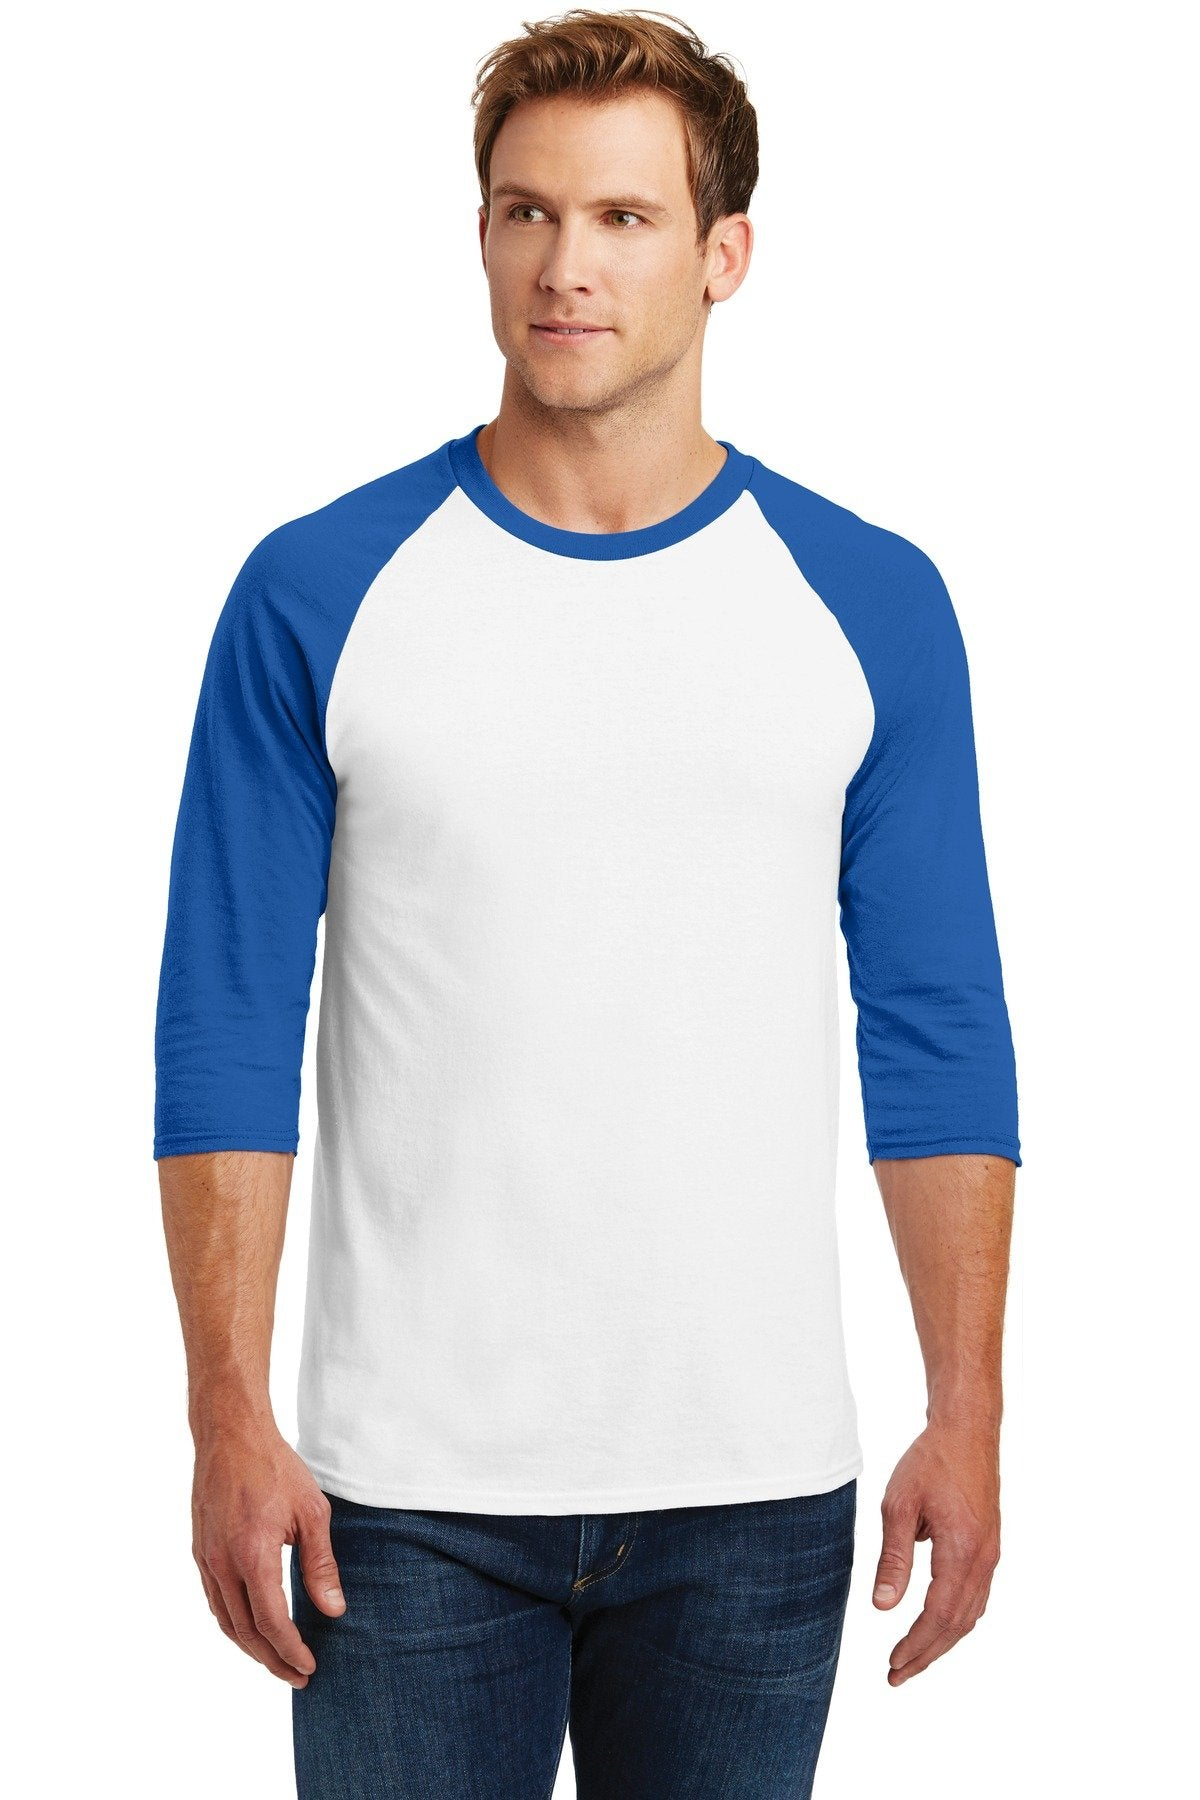 White/ Royal - Gildan 5700